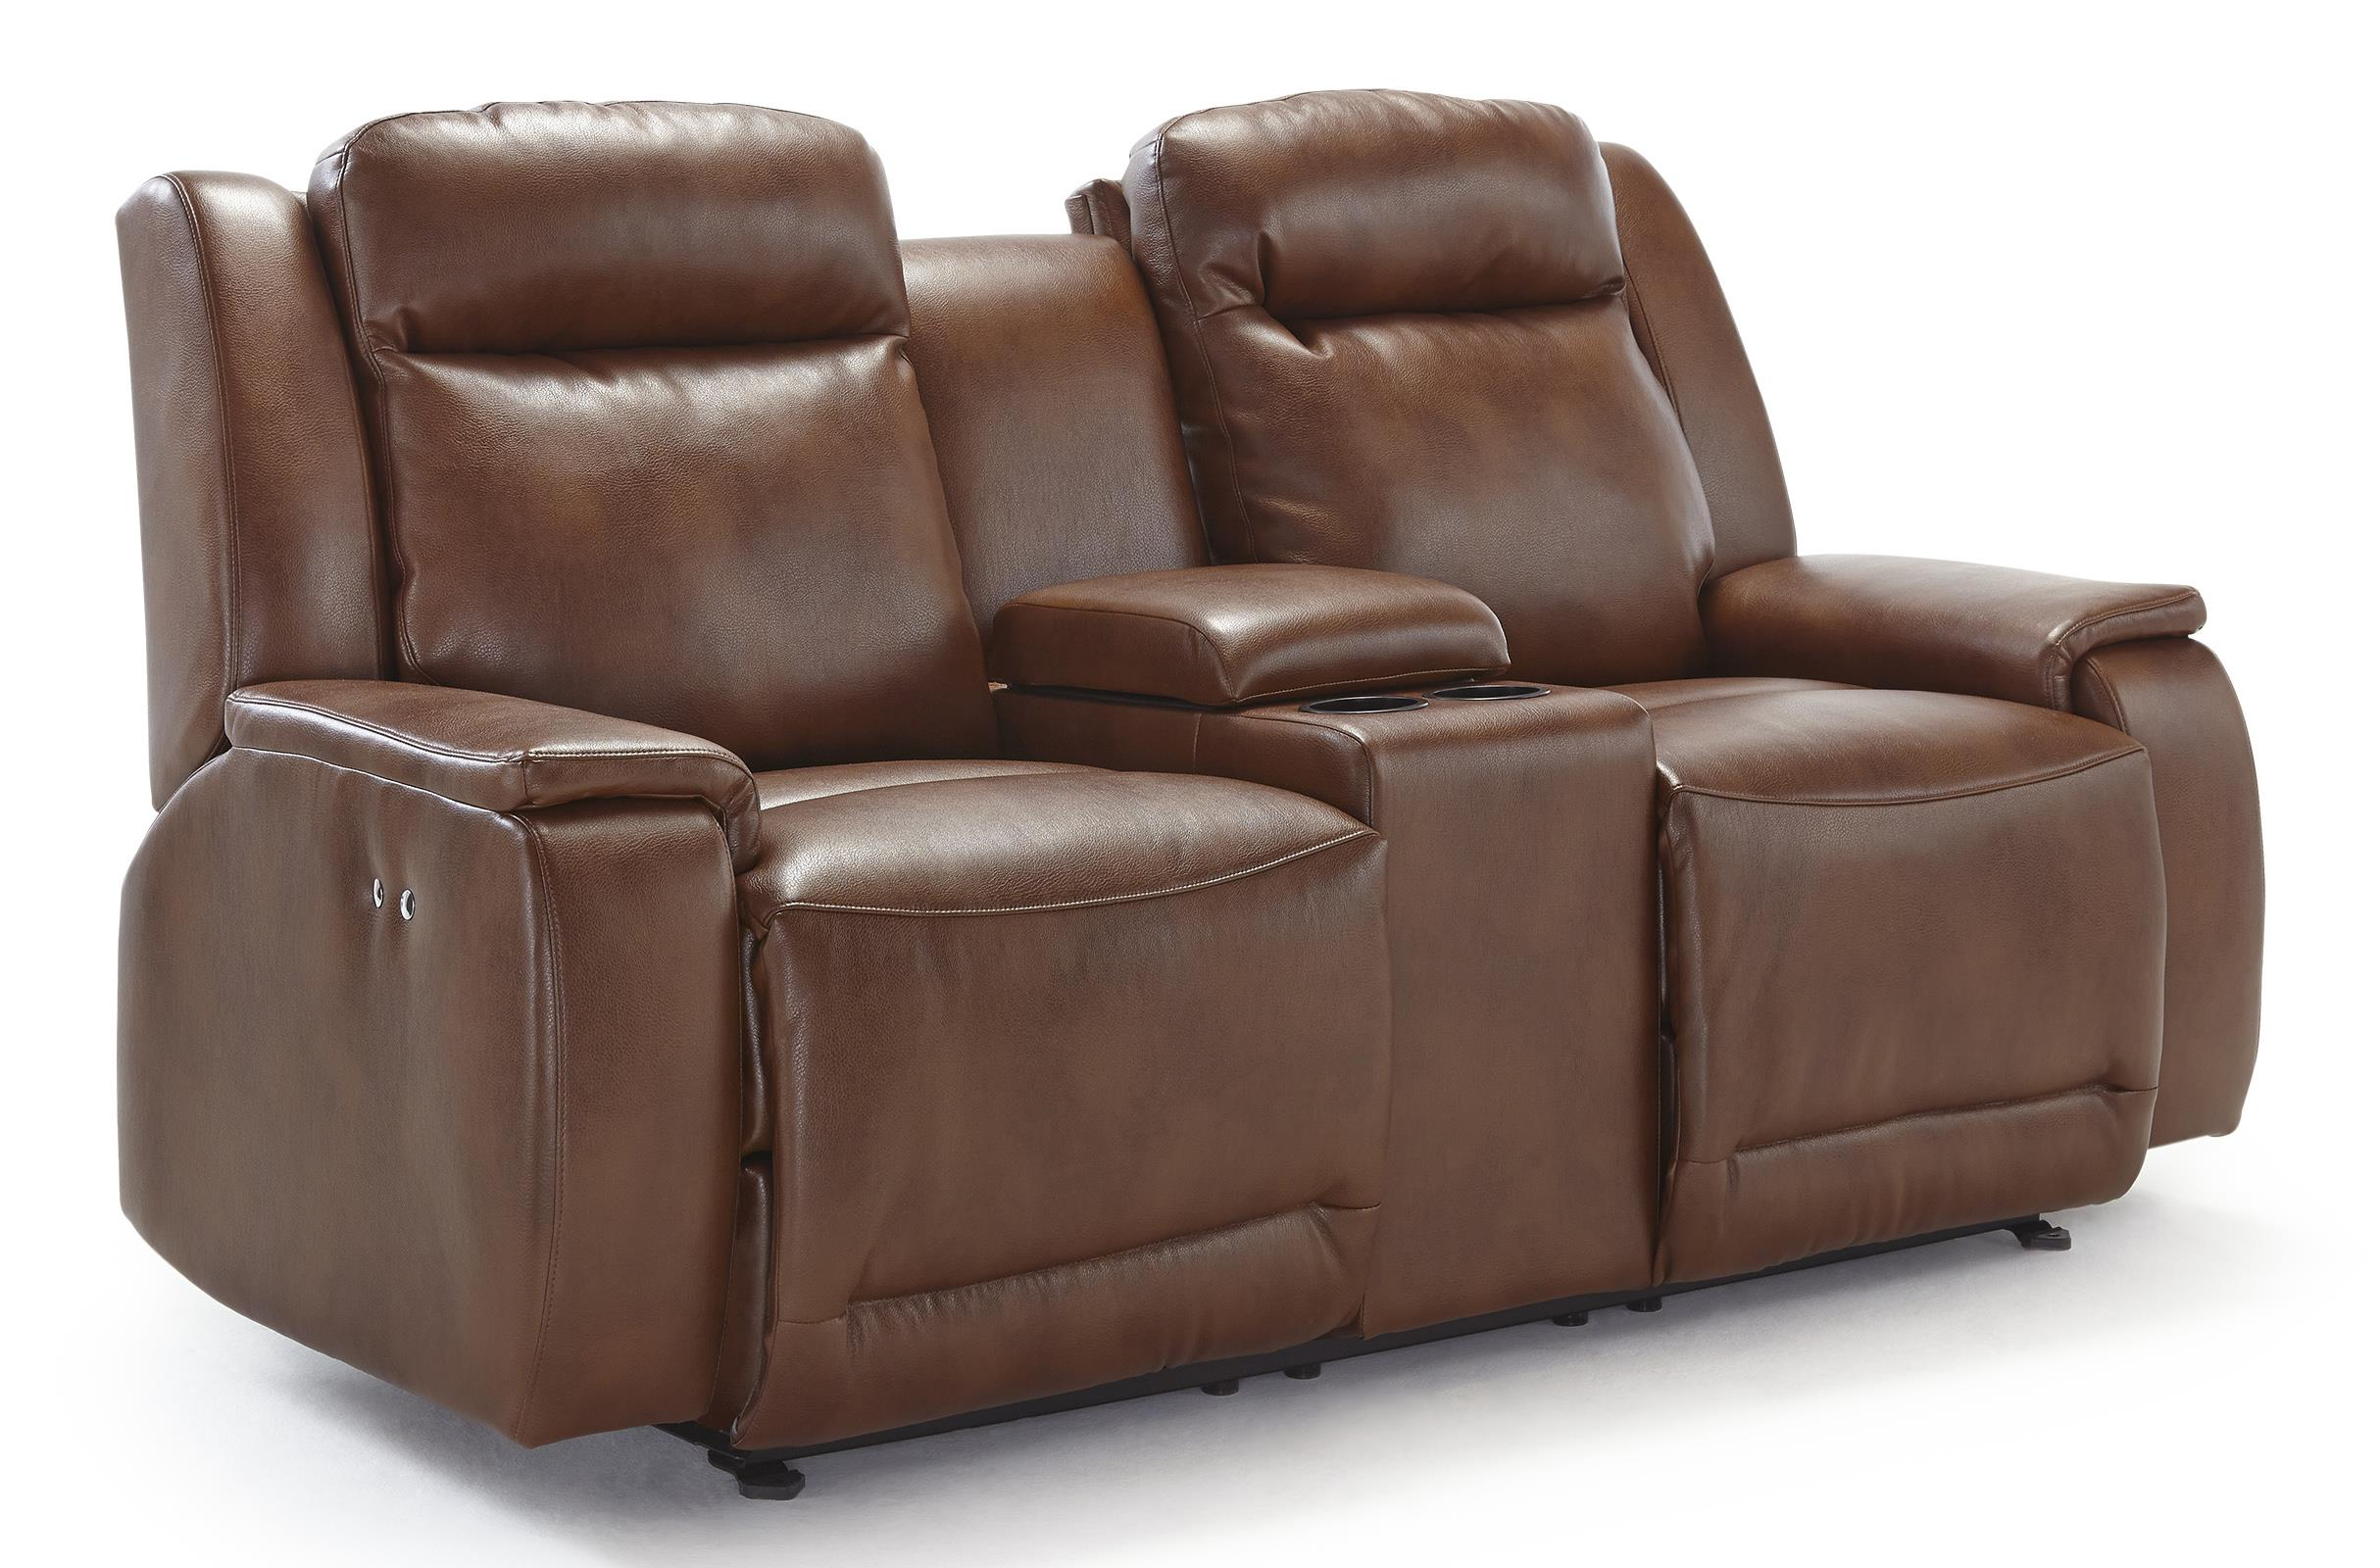 Hardisty power rocking reclining loveseat with cupholder and storage console by best home Storage loveseat